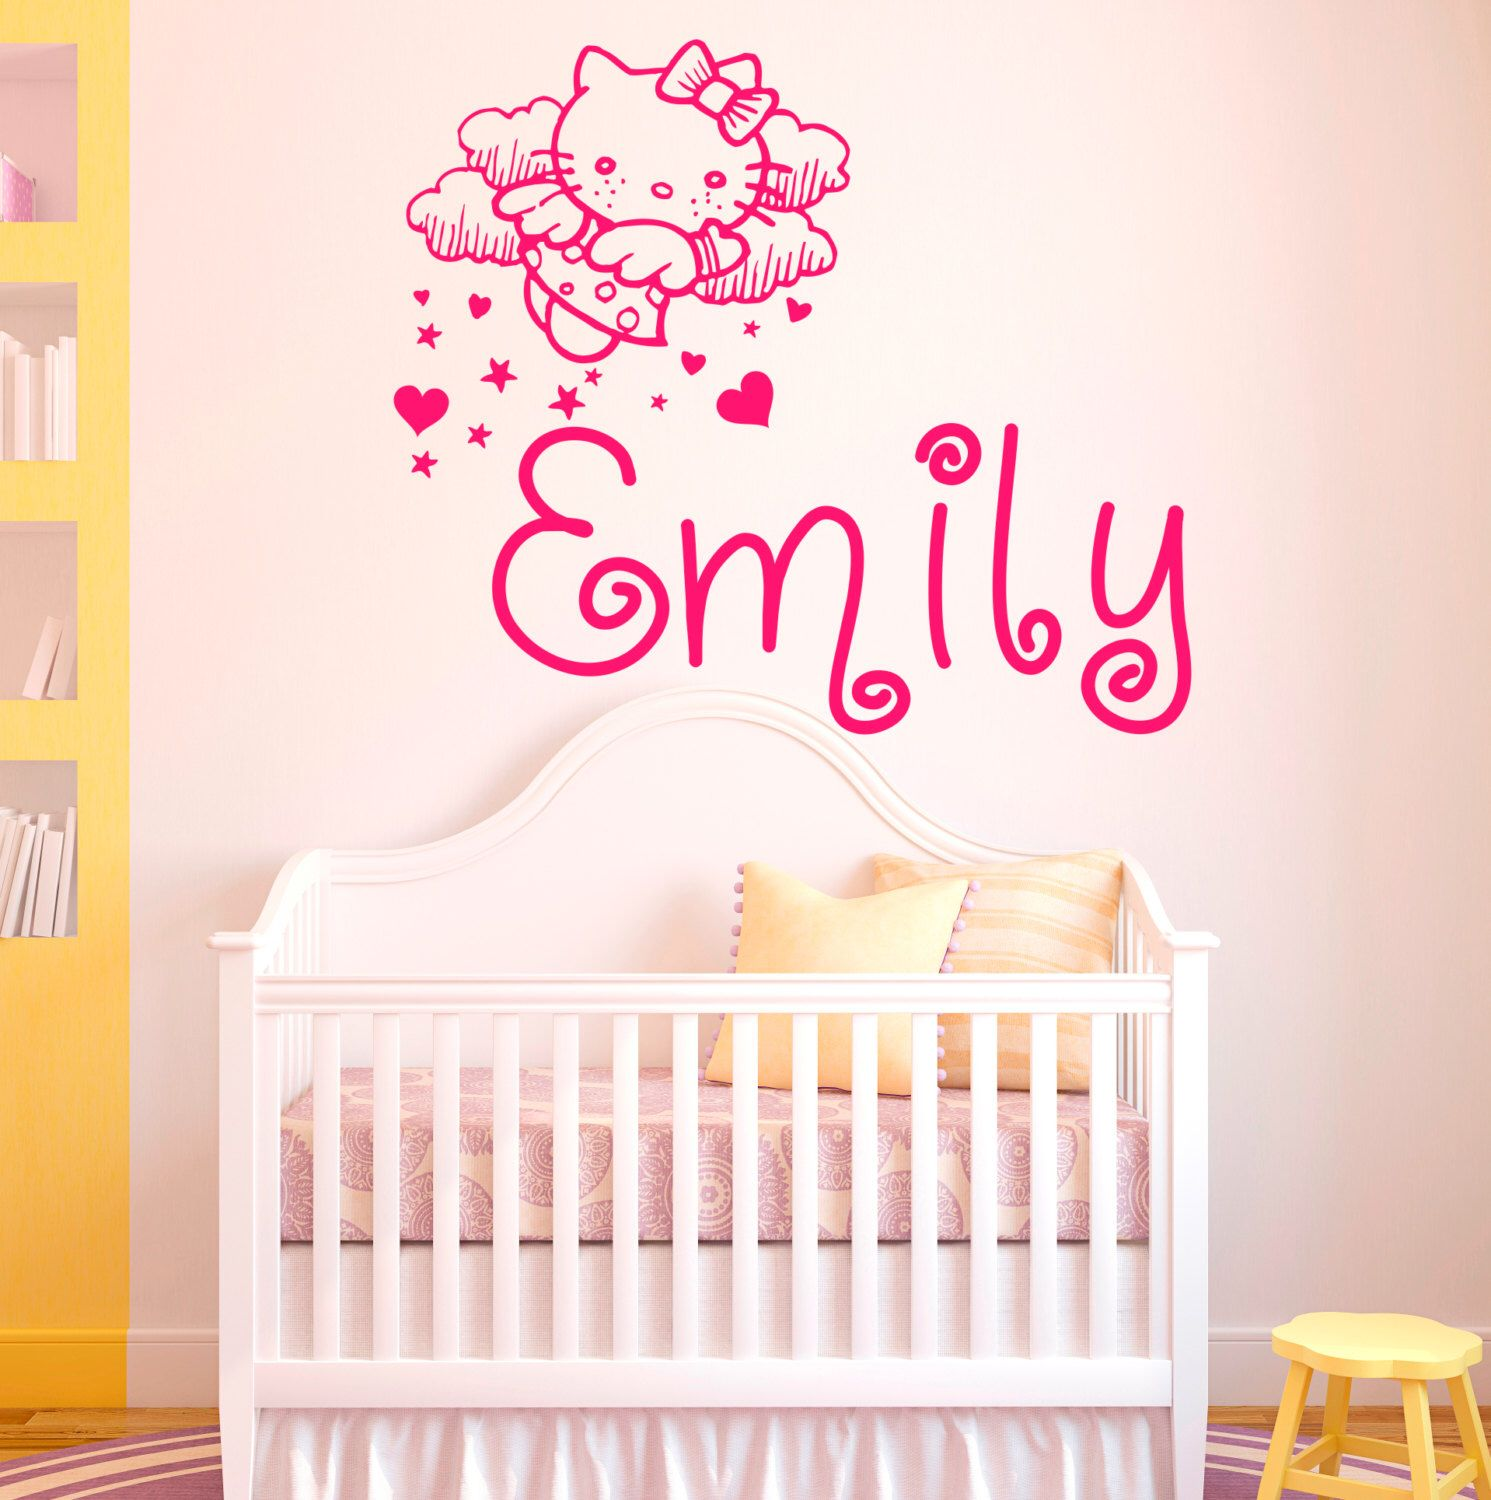 Wall Vinyl Decals Kitty Custom Personalized Name Monogram Cat - Custom vinyl stickers for girls